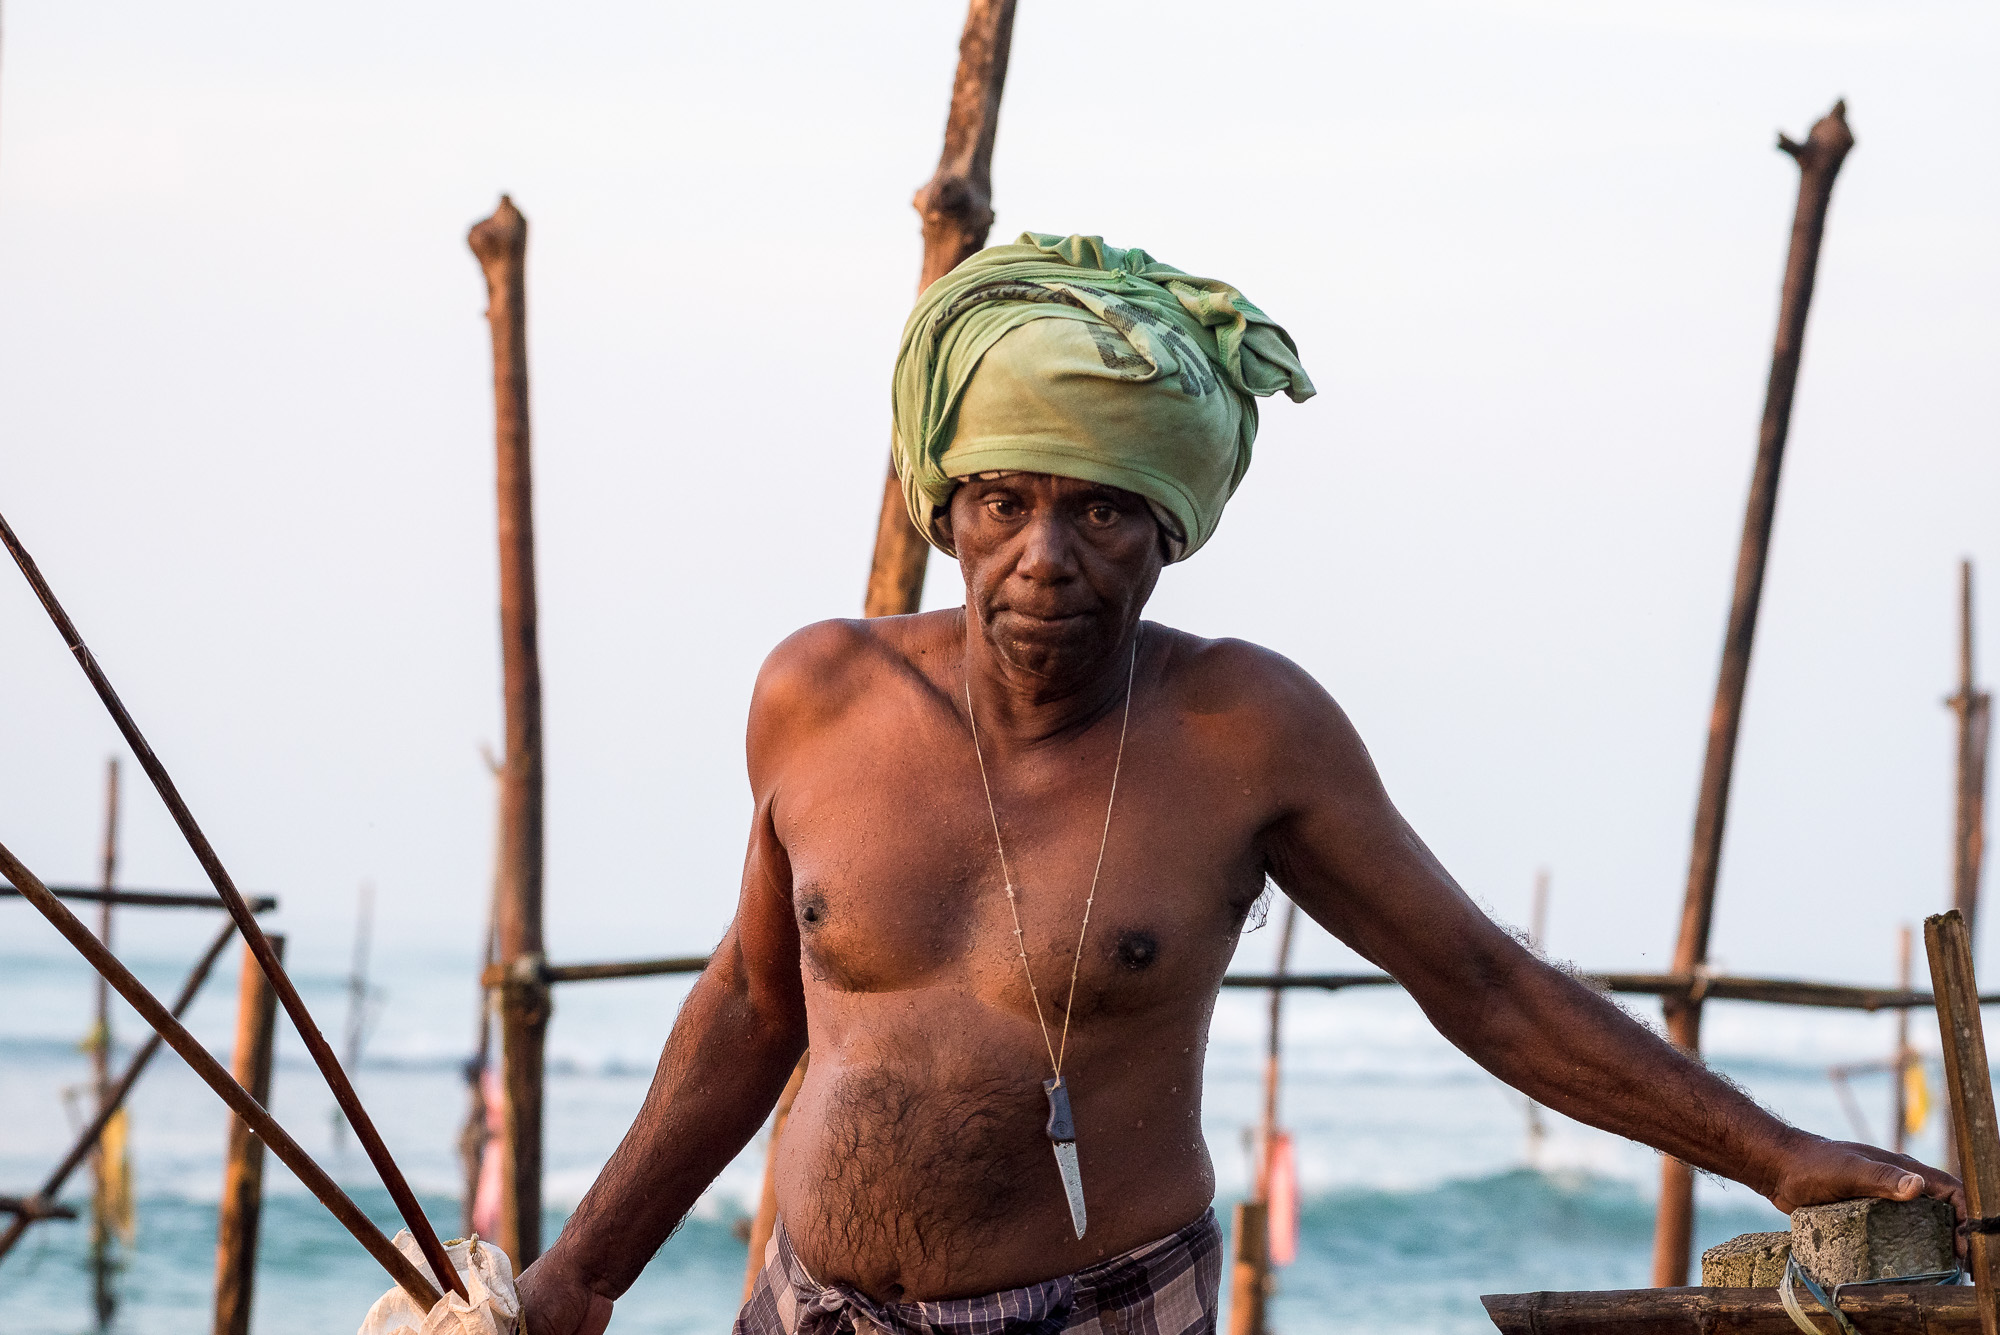 Fisherman, Ahangama beach